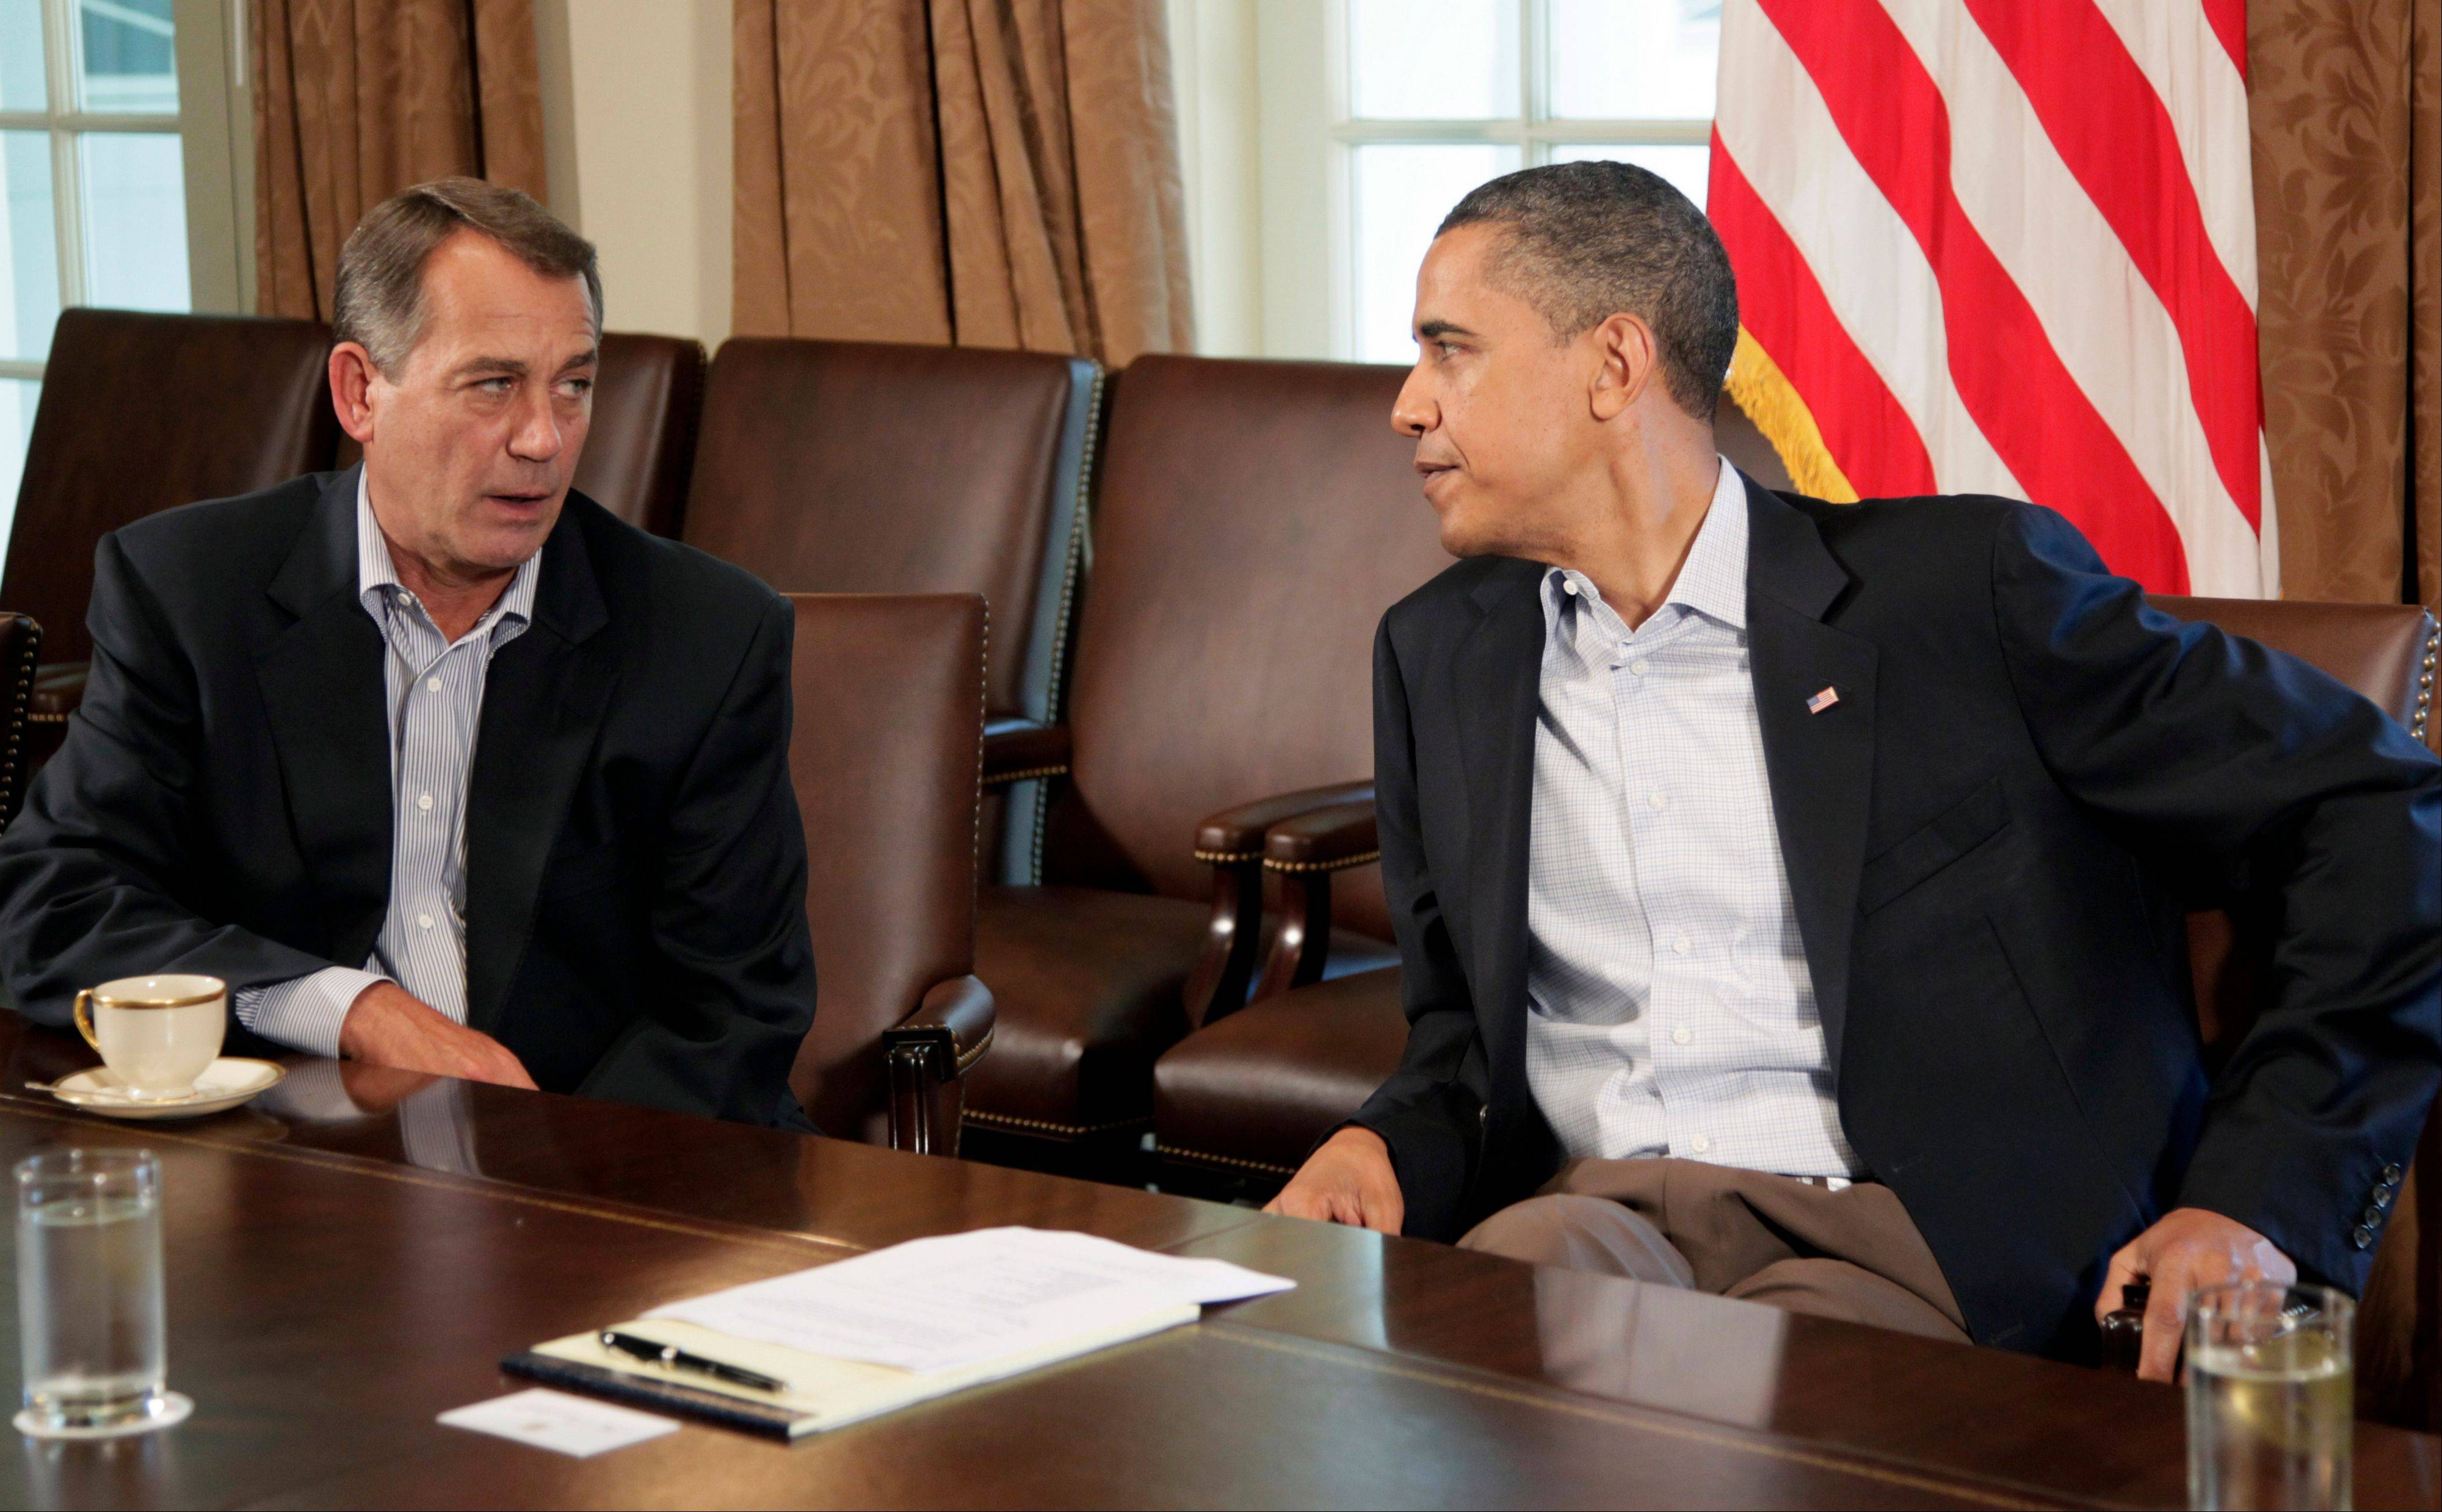 President Barack Obama and House Speaker John Boehner of Ohio, left, in the Cabinet Room of the White House, Saturday, July 23, 2011, in Washington, to discuss the debt.